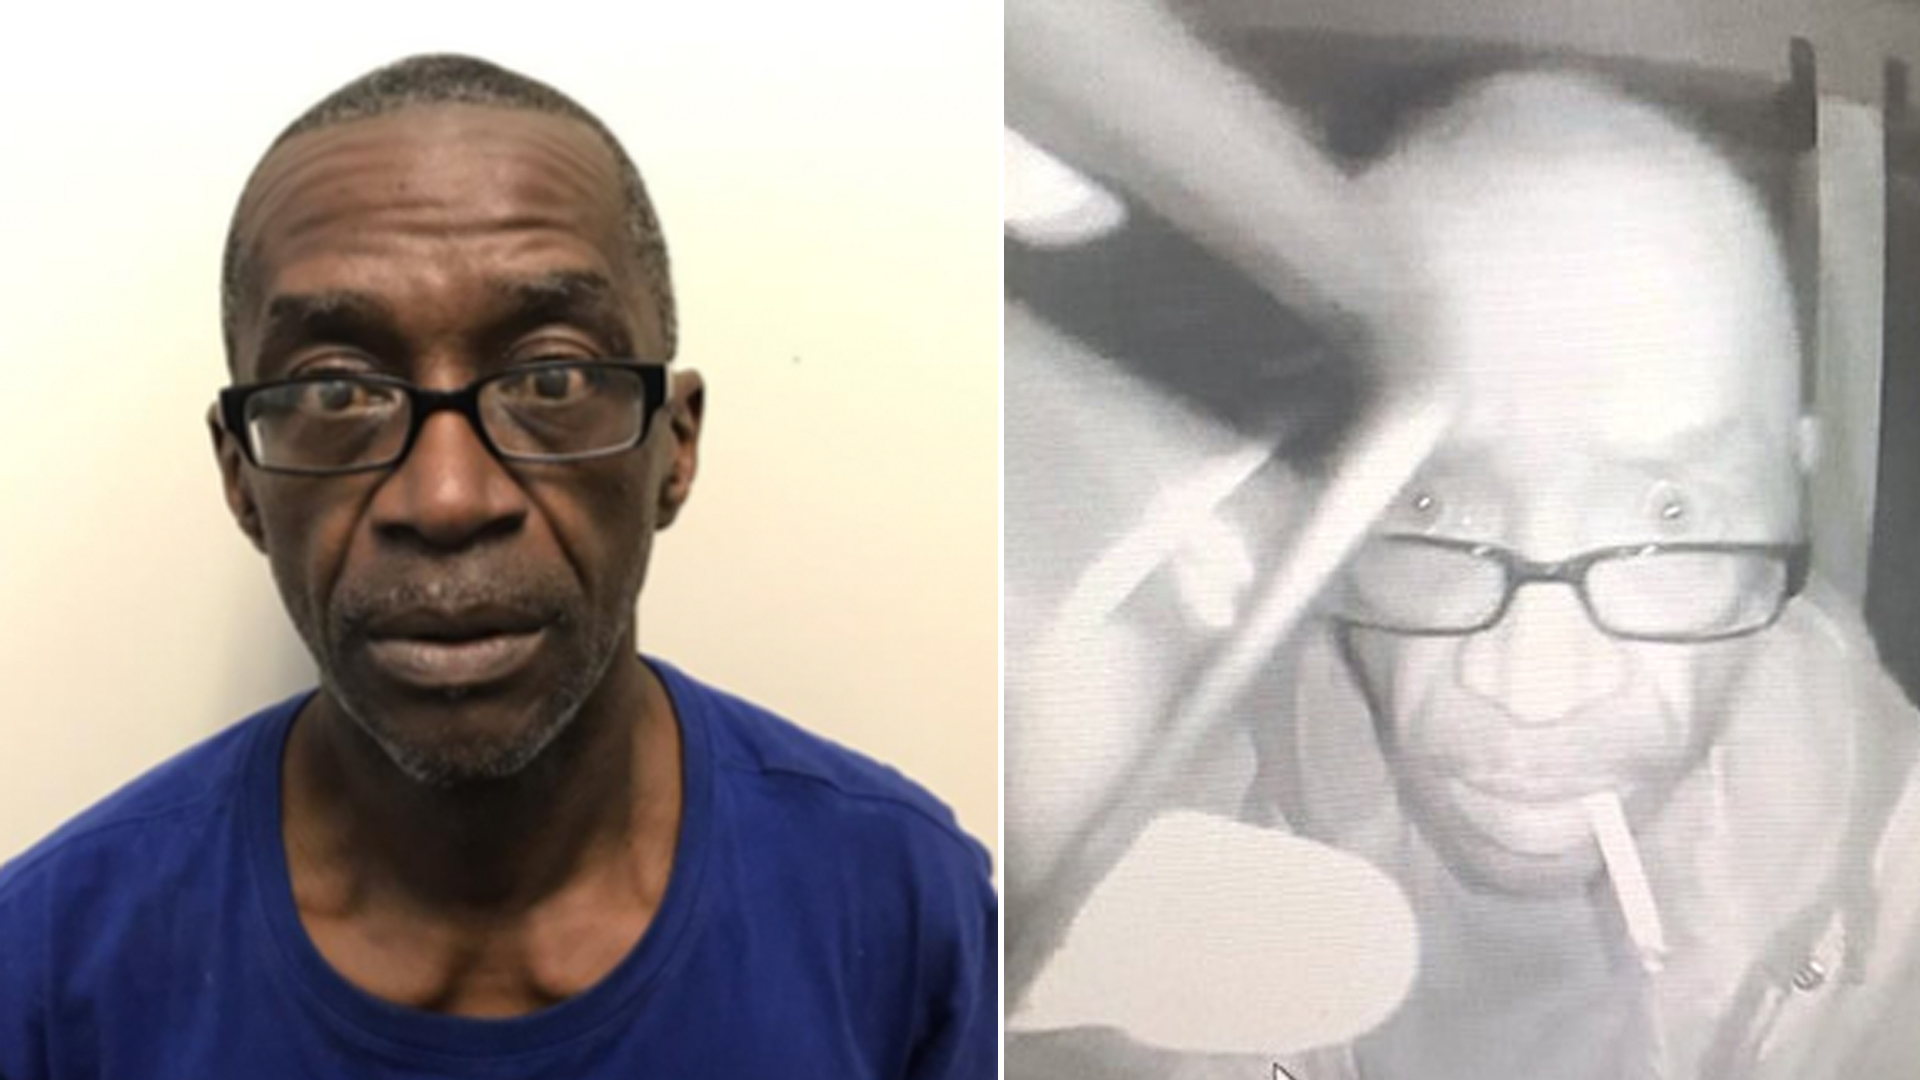 Kevin Howard Hughes, 53, is seen in an undated booking photo provided by the Hemet Police Department on the left, and the suspect is seen in surveillance video on the night of the burglary on April 20, 2019 in Hemet, on the right.